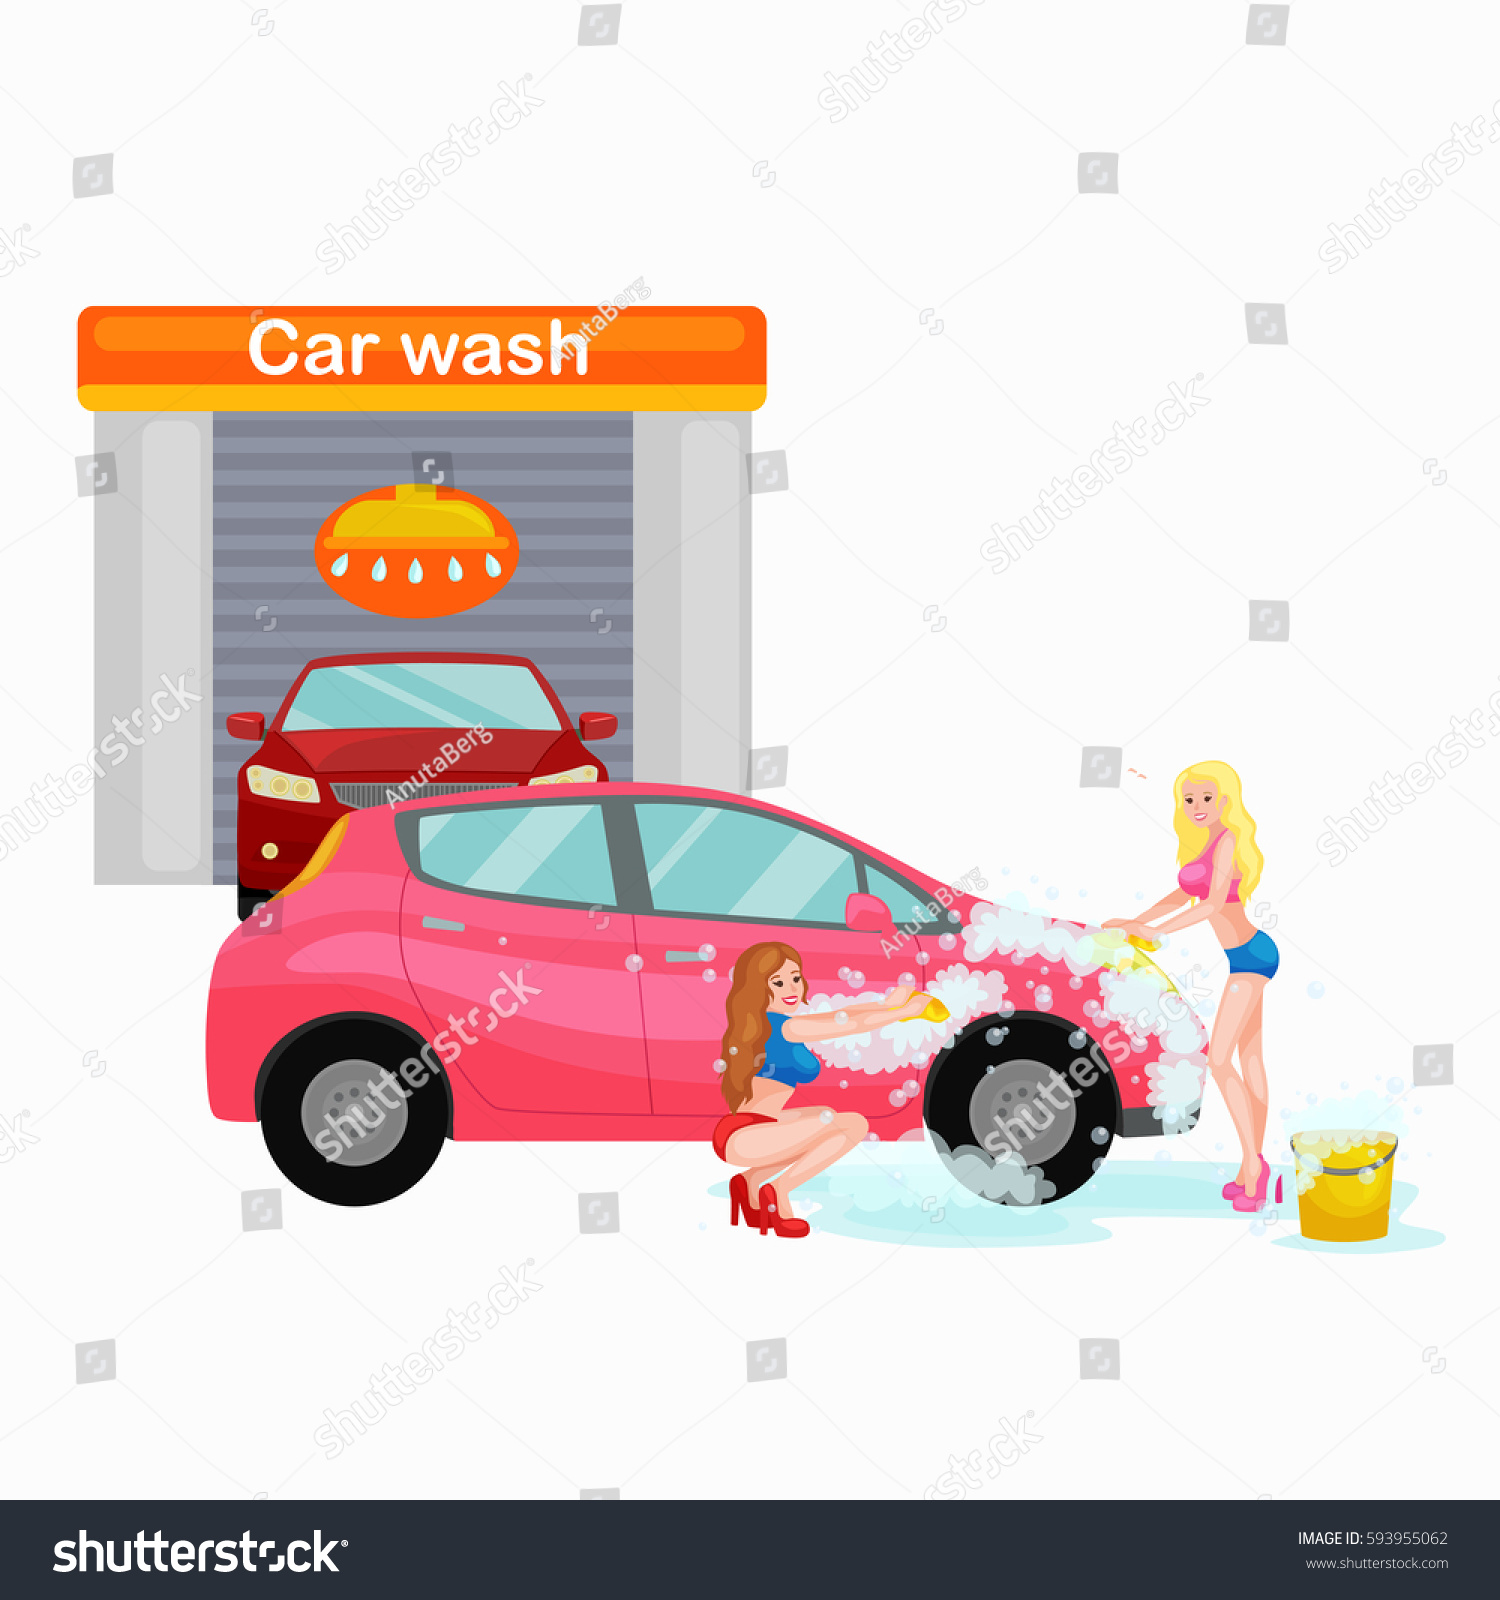 car wash services auto cleaning water stock illustration 593955062 shutterstock. Black Bedroom Furniture Sets. Home Design Ideas